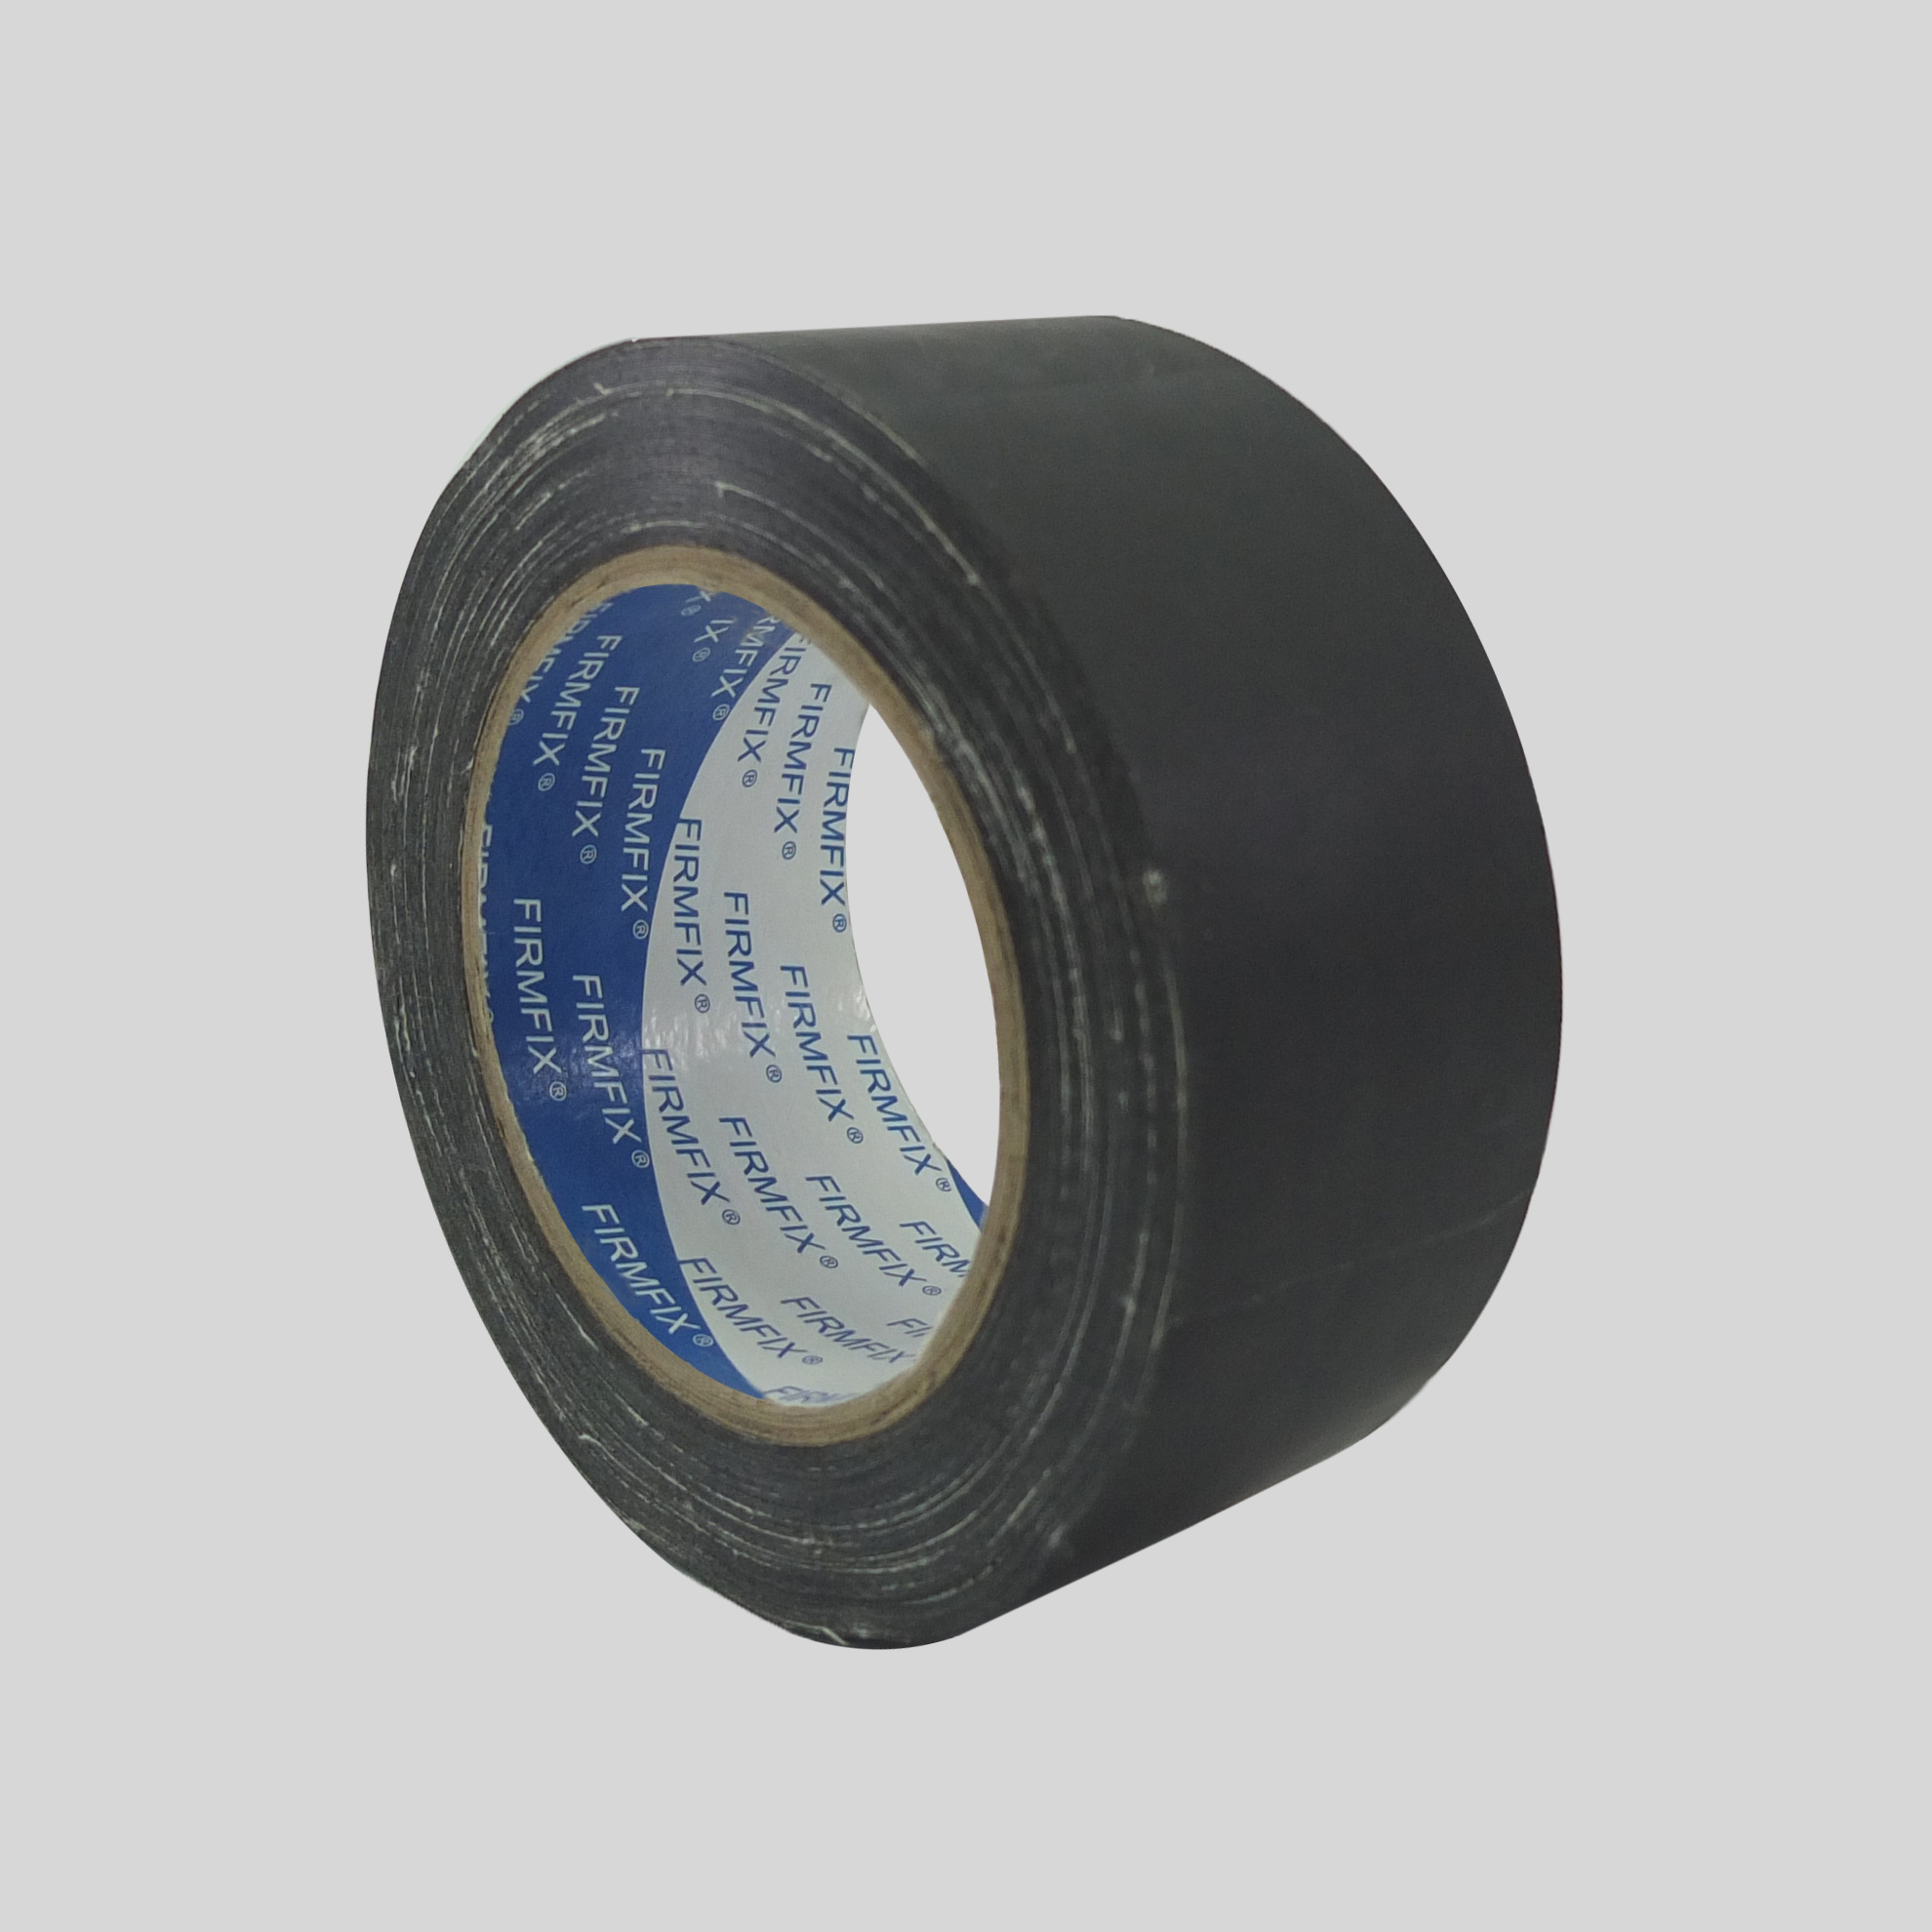 FIRMFIX Gaffers Tape / Photographer's Tape / Photographer Tape / Camera Tape / Matt Cloth Tape